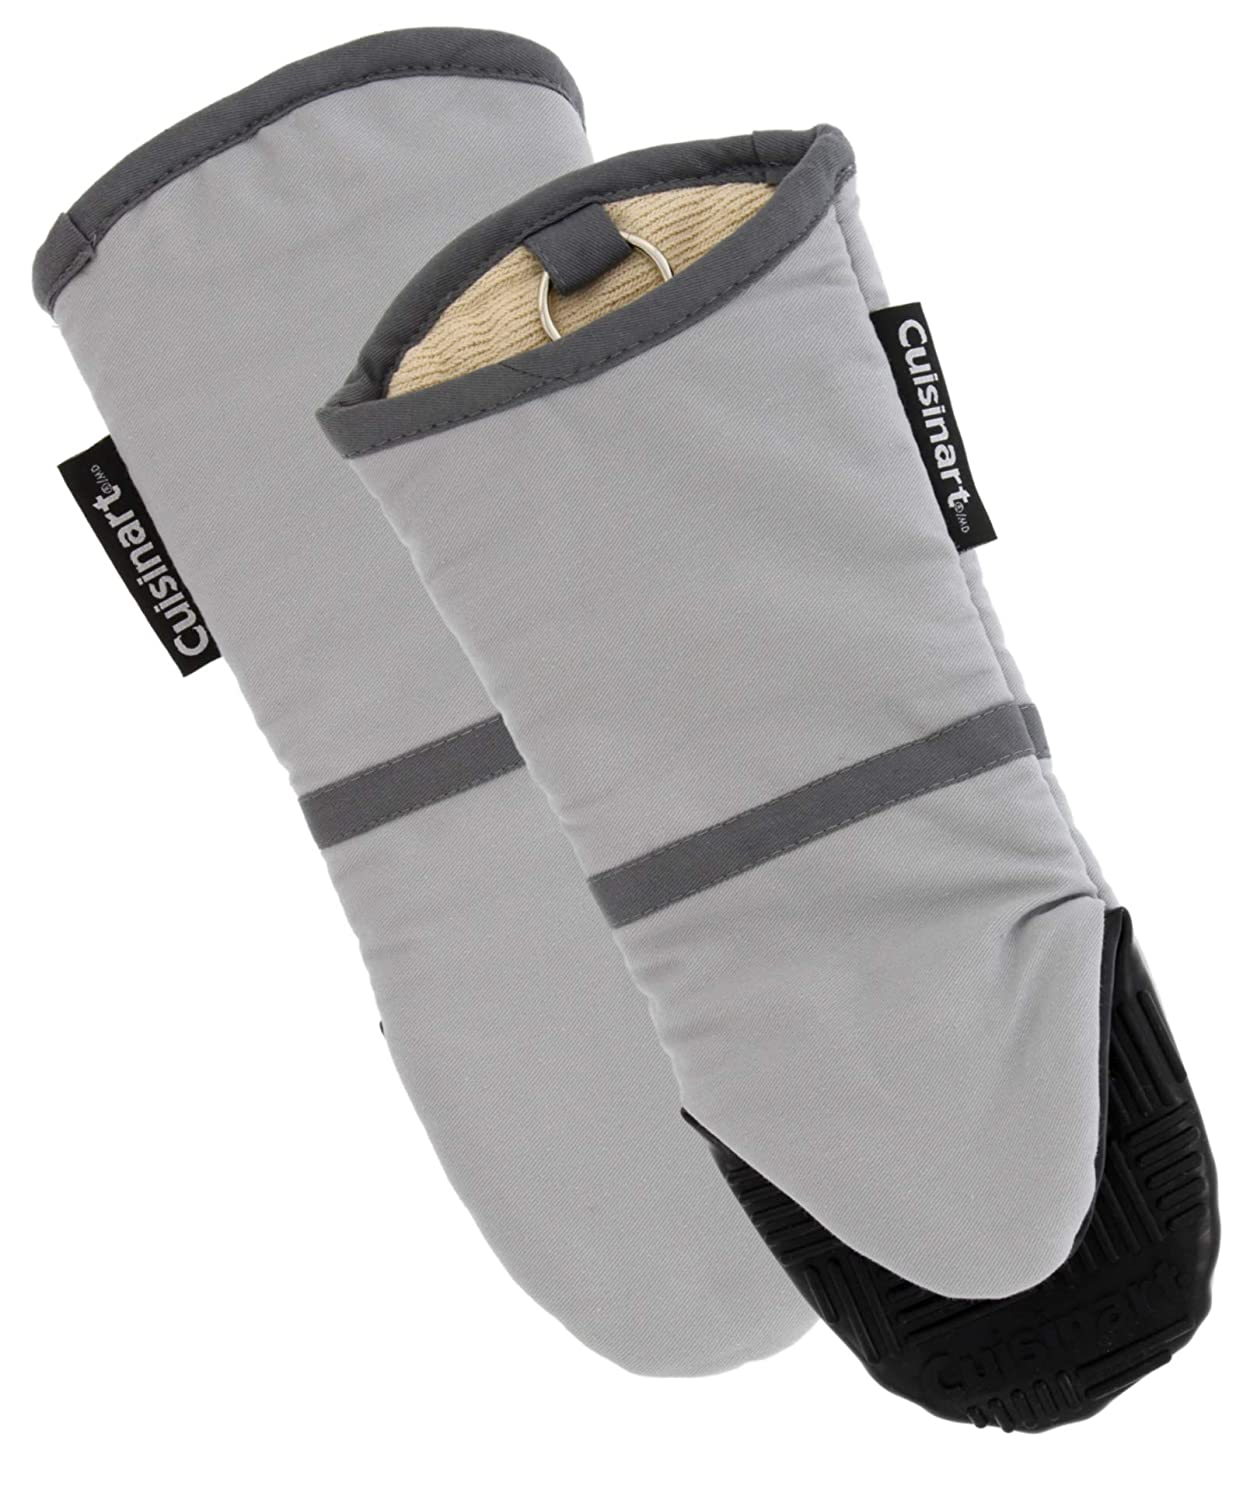 Cuisinart Silicone Oven Mitts -Heat Resistant up to 500 degrees F Handle Hot Cooking Items Safely-Non-Slip Grip Oven Gloves with Soft Insulated Deep Pockets and Convenient Hanging Loop-Light Grey, 2pk